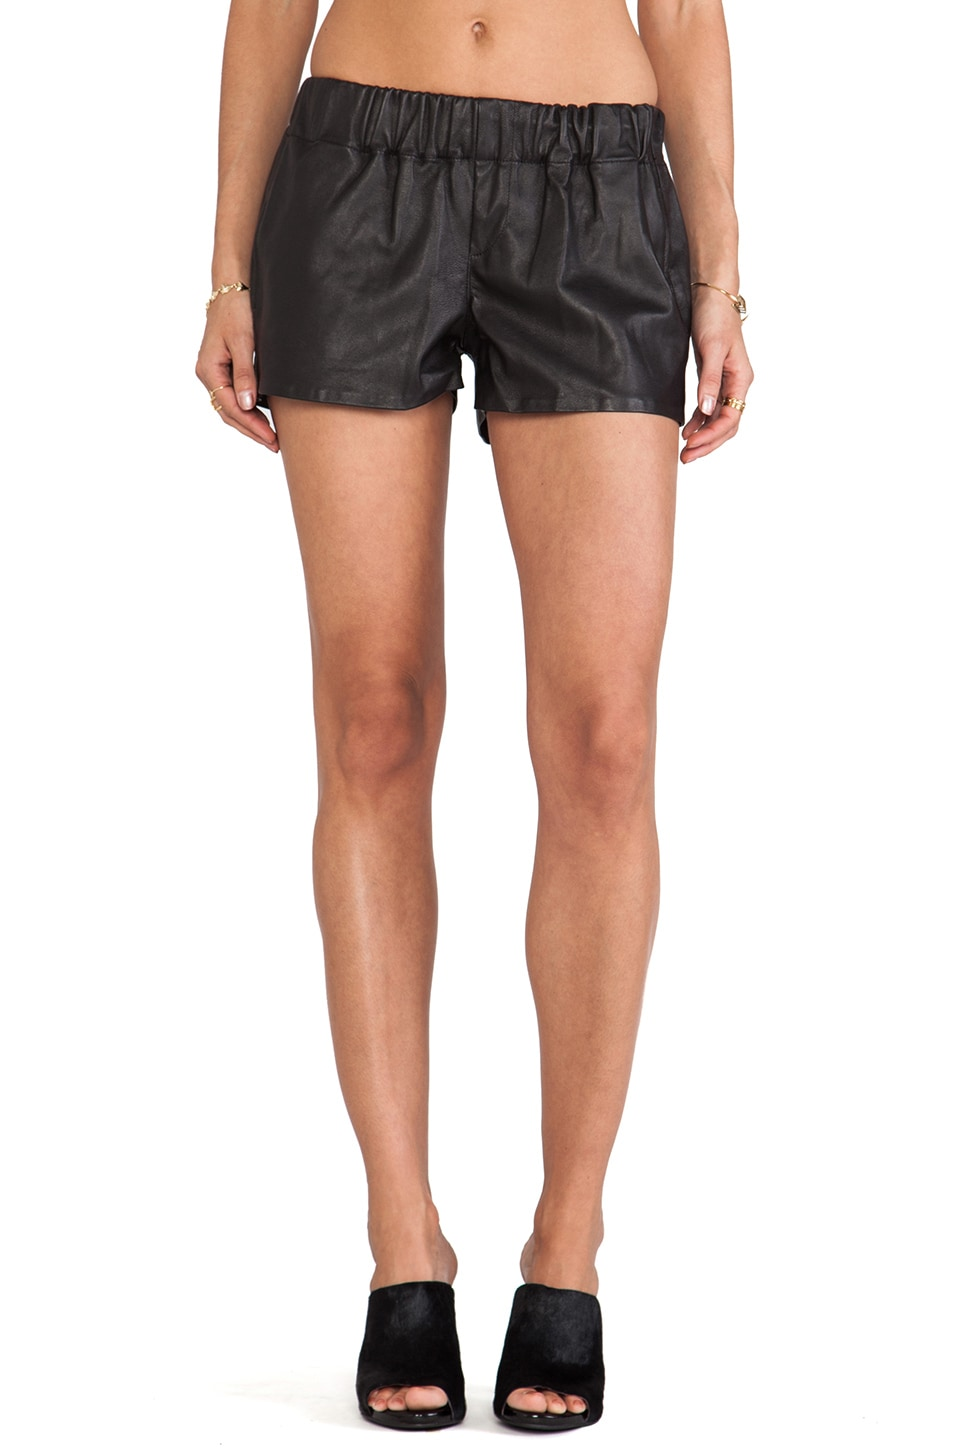 rag & bone/JEAN rag & bone Pajama Short in Black Leather